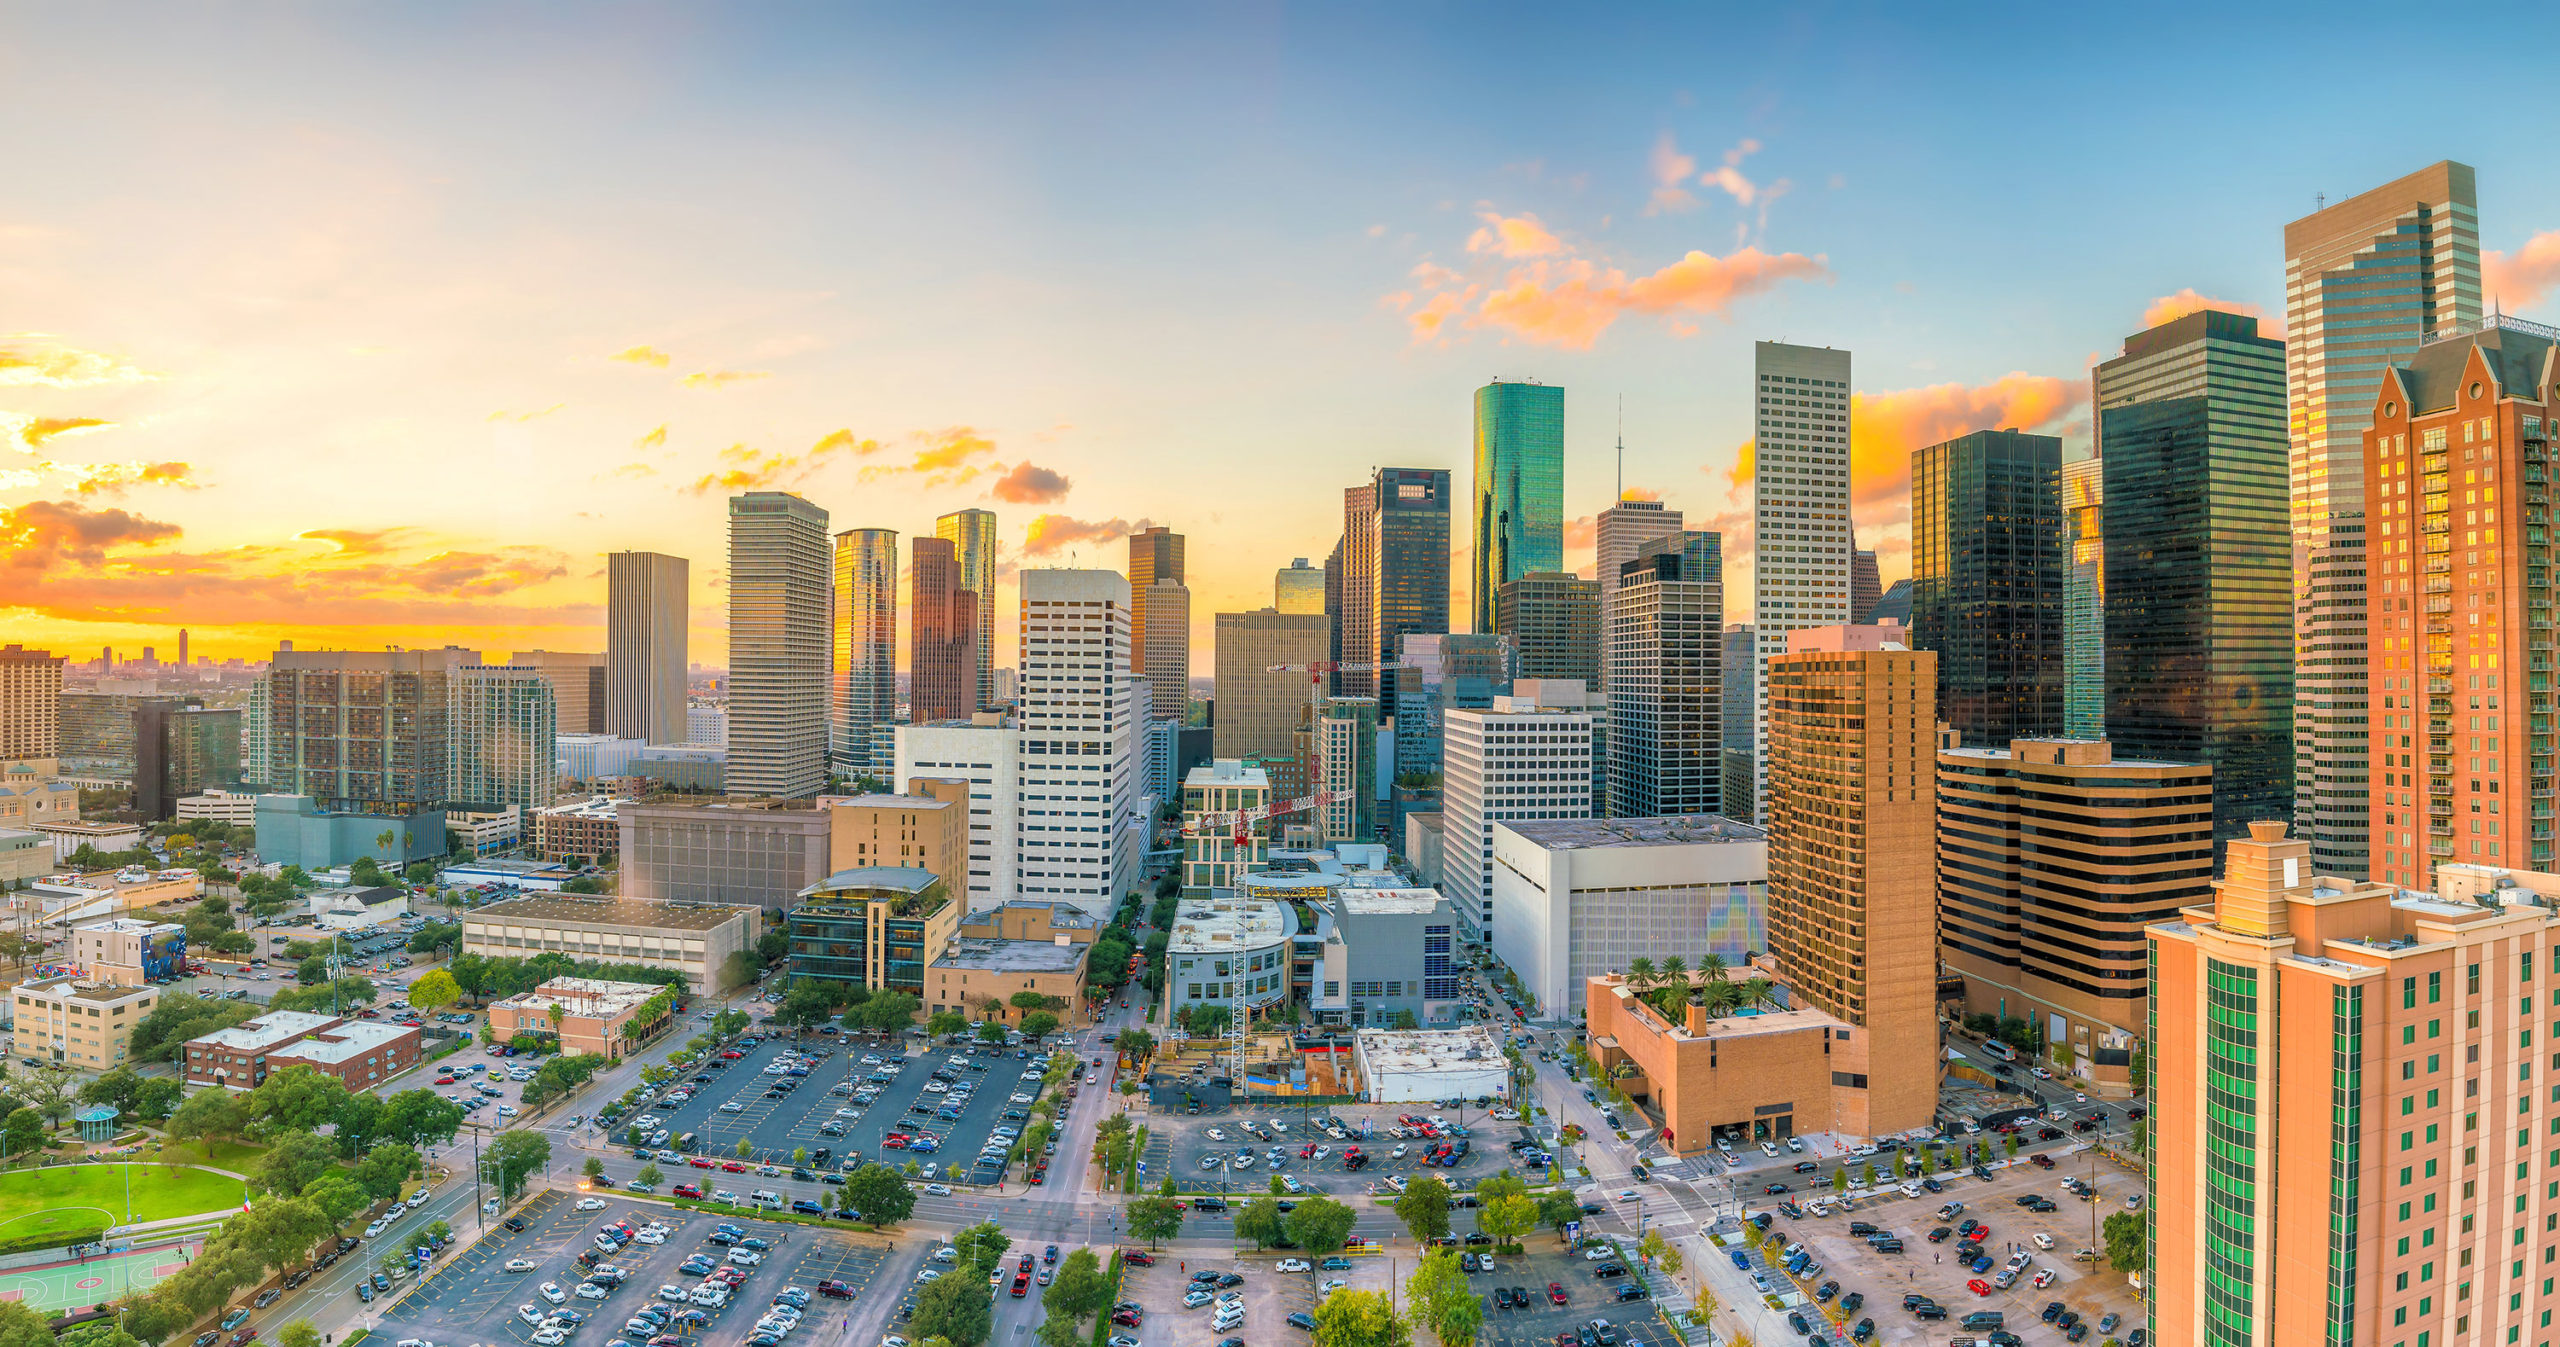 WELL Health provides innovative experience for Houston Methodist patients during COVID-19 pandemic